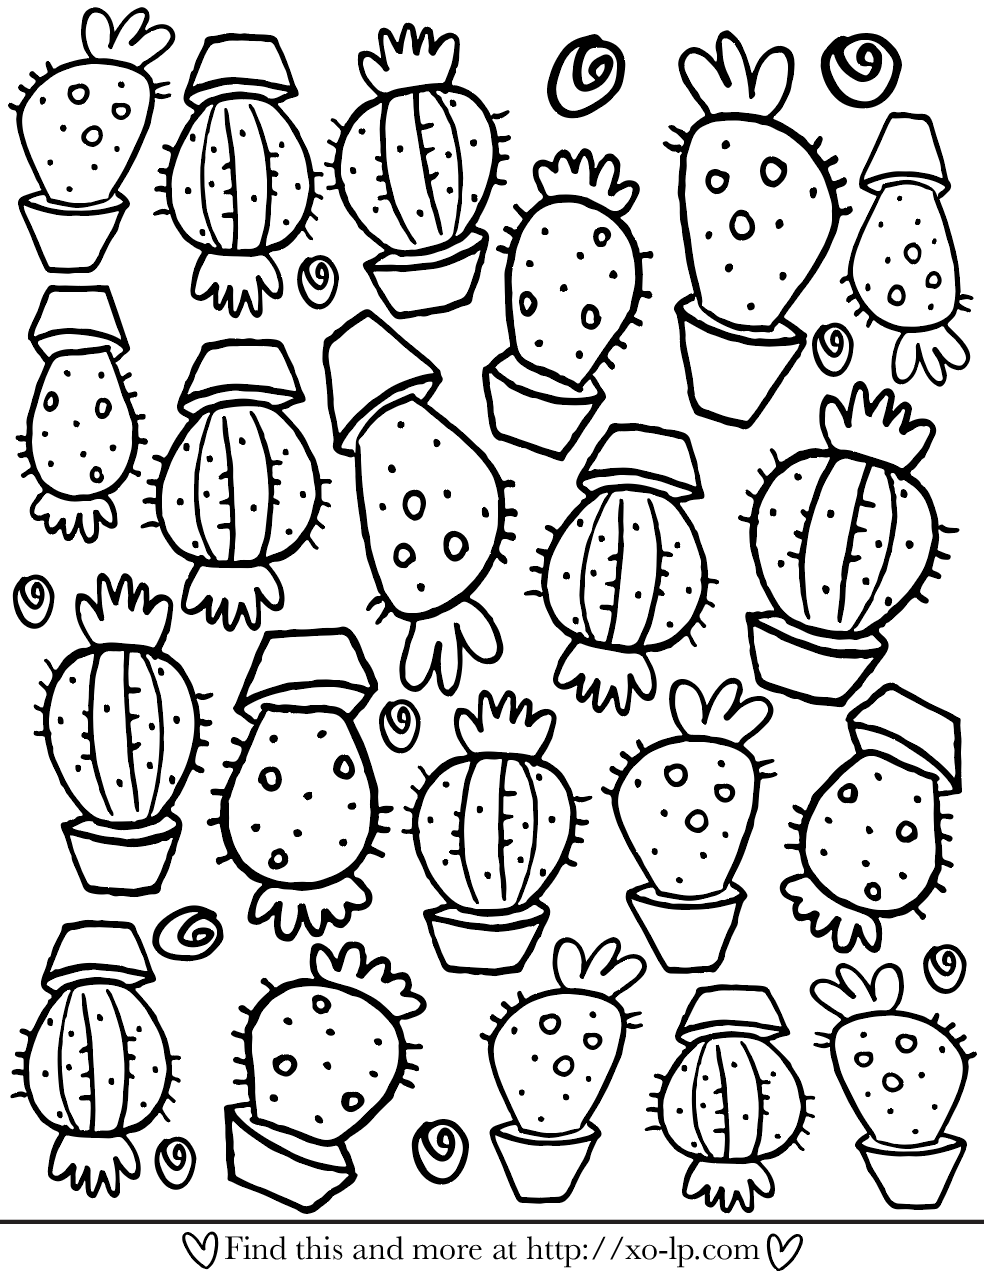 Free Cactus Printable Coloring Page   Printable Coloring